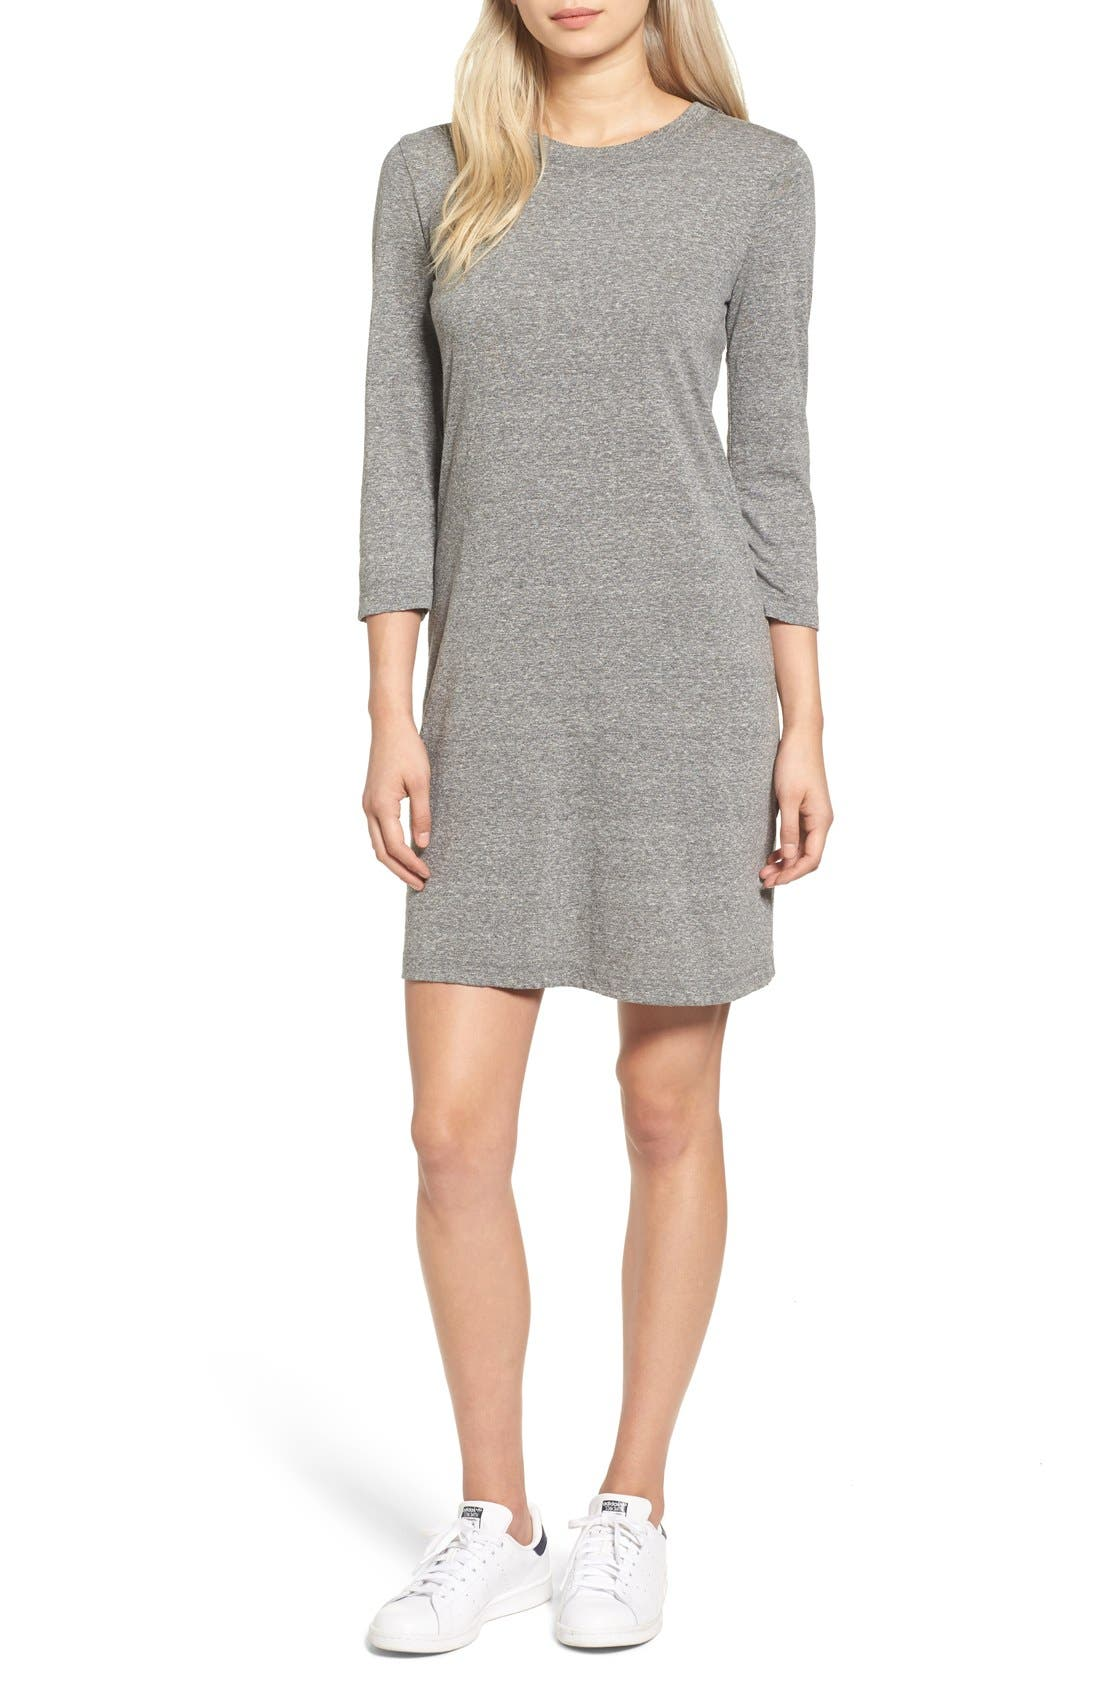 T-Shirt Dress,                         Main,                         color, Heather Grey